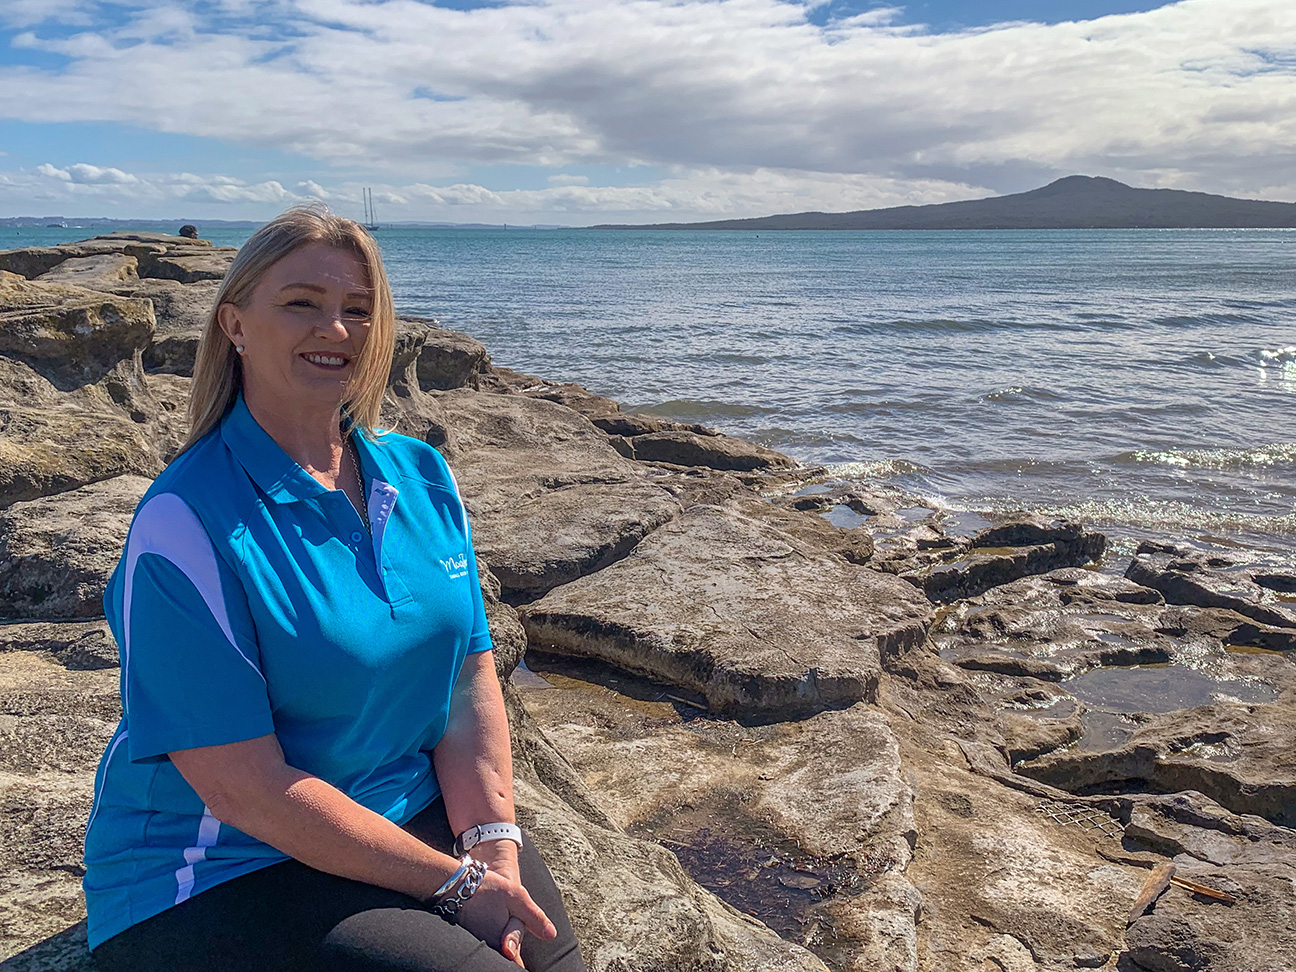 MoaTours Kiwi Guide Dianne on the beach with Rangitoto in the background